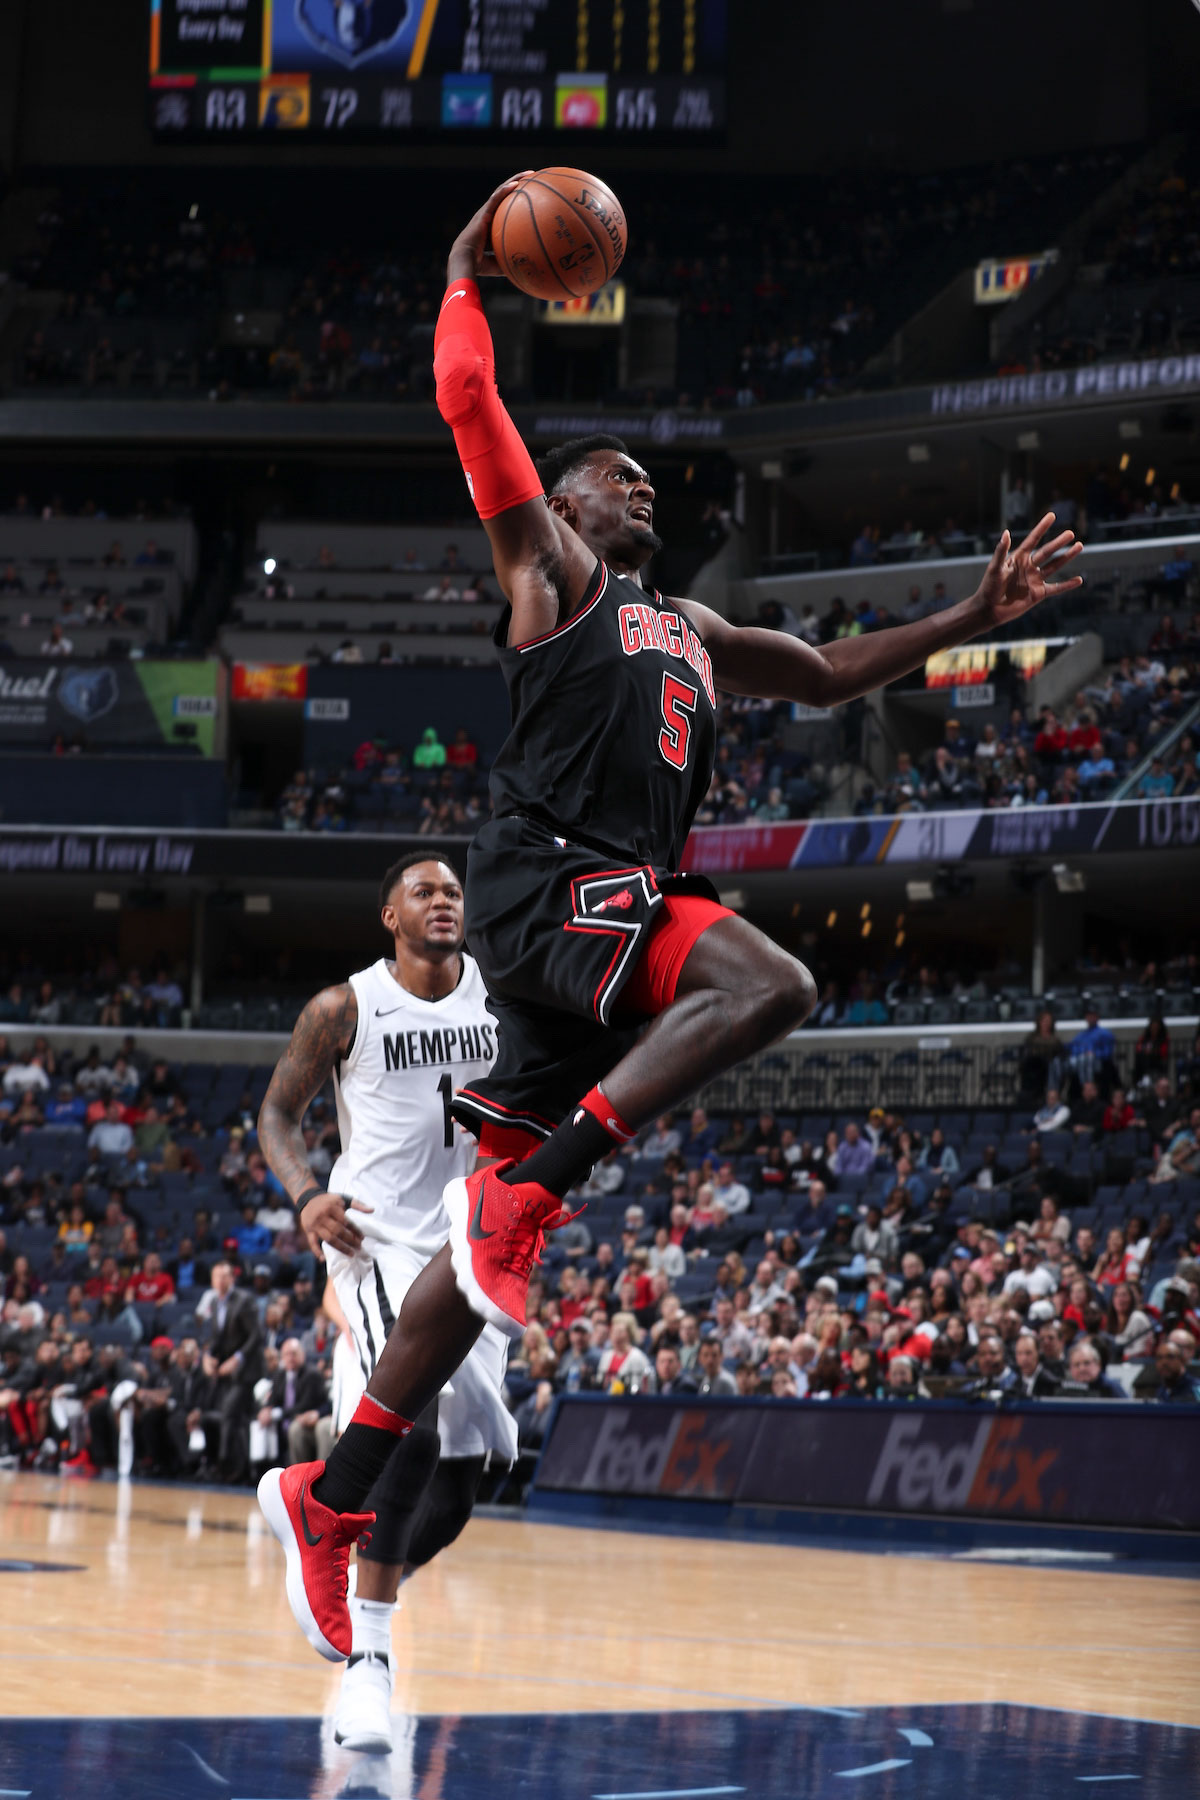 Bobby Portis #5 of the Chicago Bulls drives to the basket during the game against the Memphis Grizzlies on March 15, 2018 at FedExForum in Memphis, Tennessee